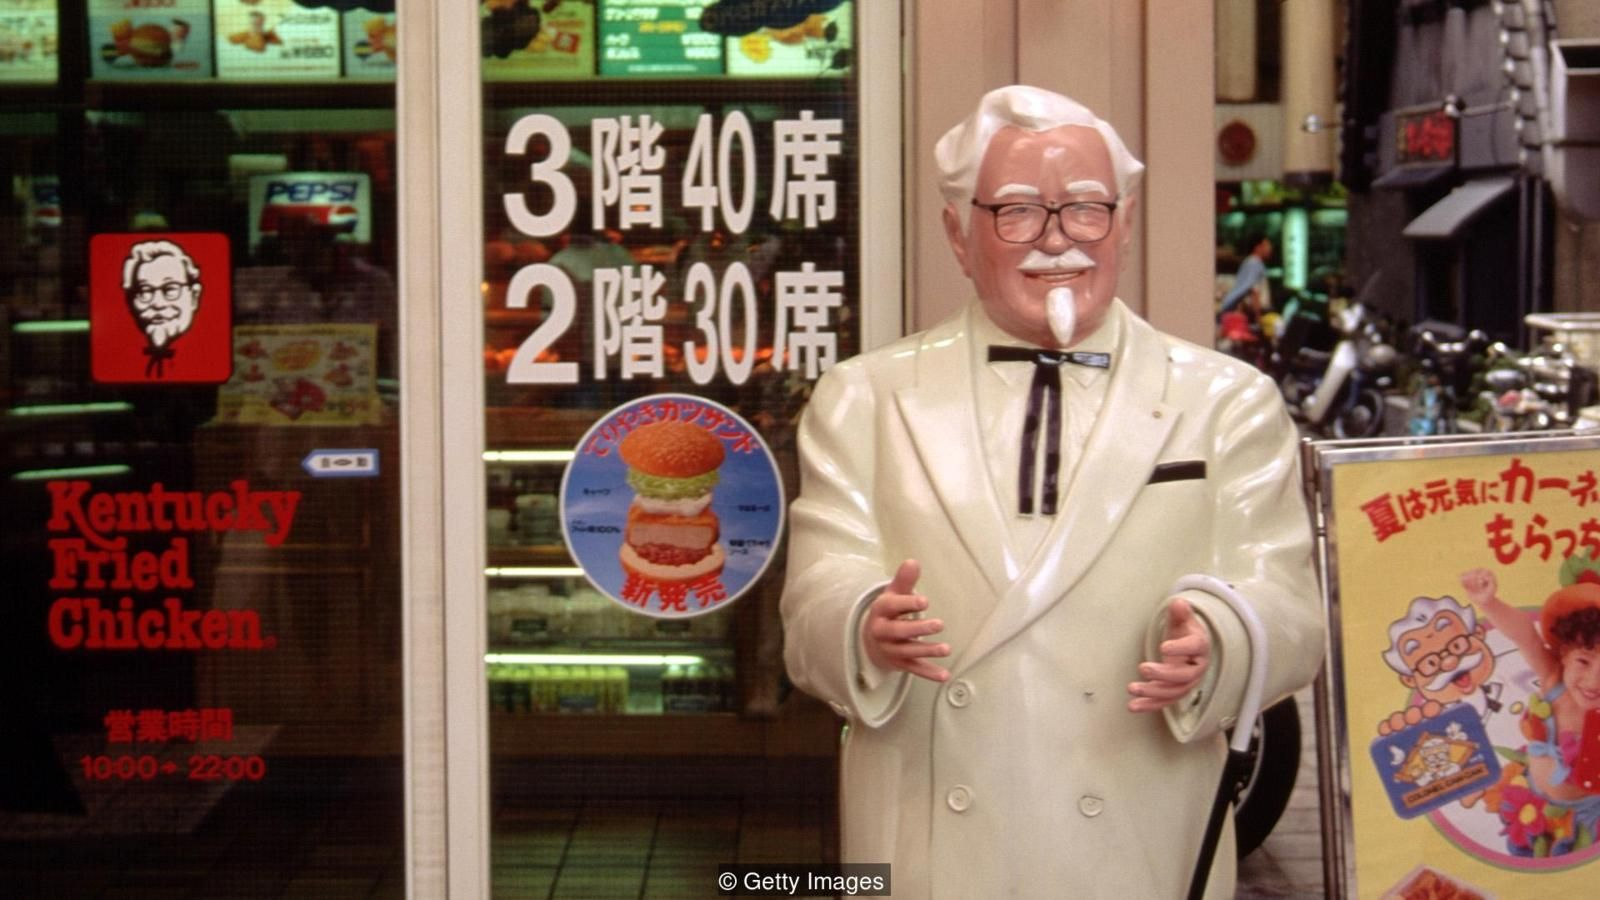 Why Japan celebrates Christmas with KFC | Celebrating christmas, KFC ...